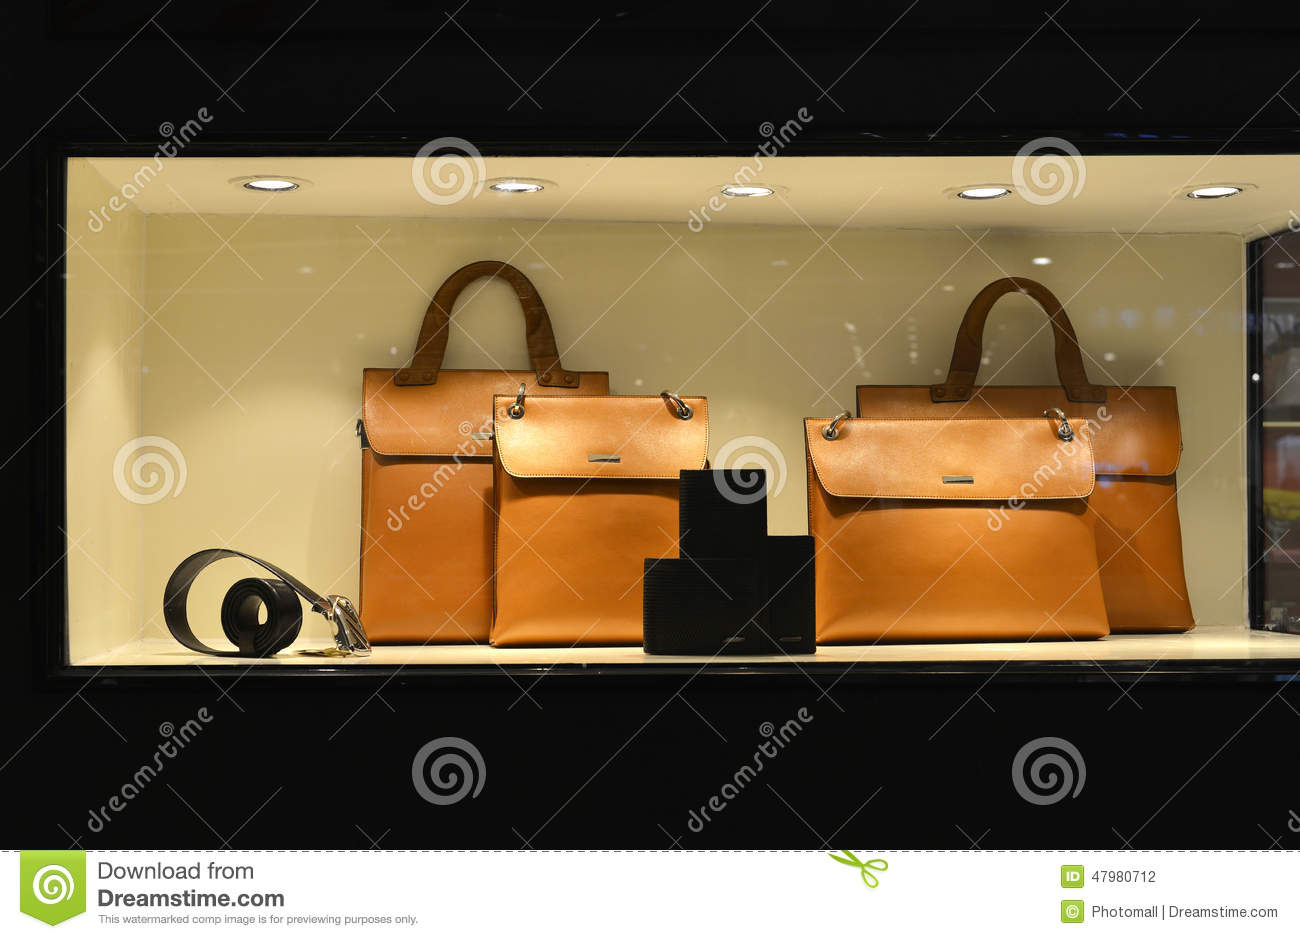 fashionable Luxury leather handbag Belt Wallet in shop window lit up by led light ,handbag store,shopping,clothing shop